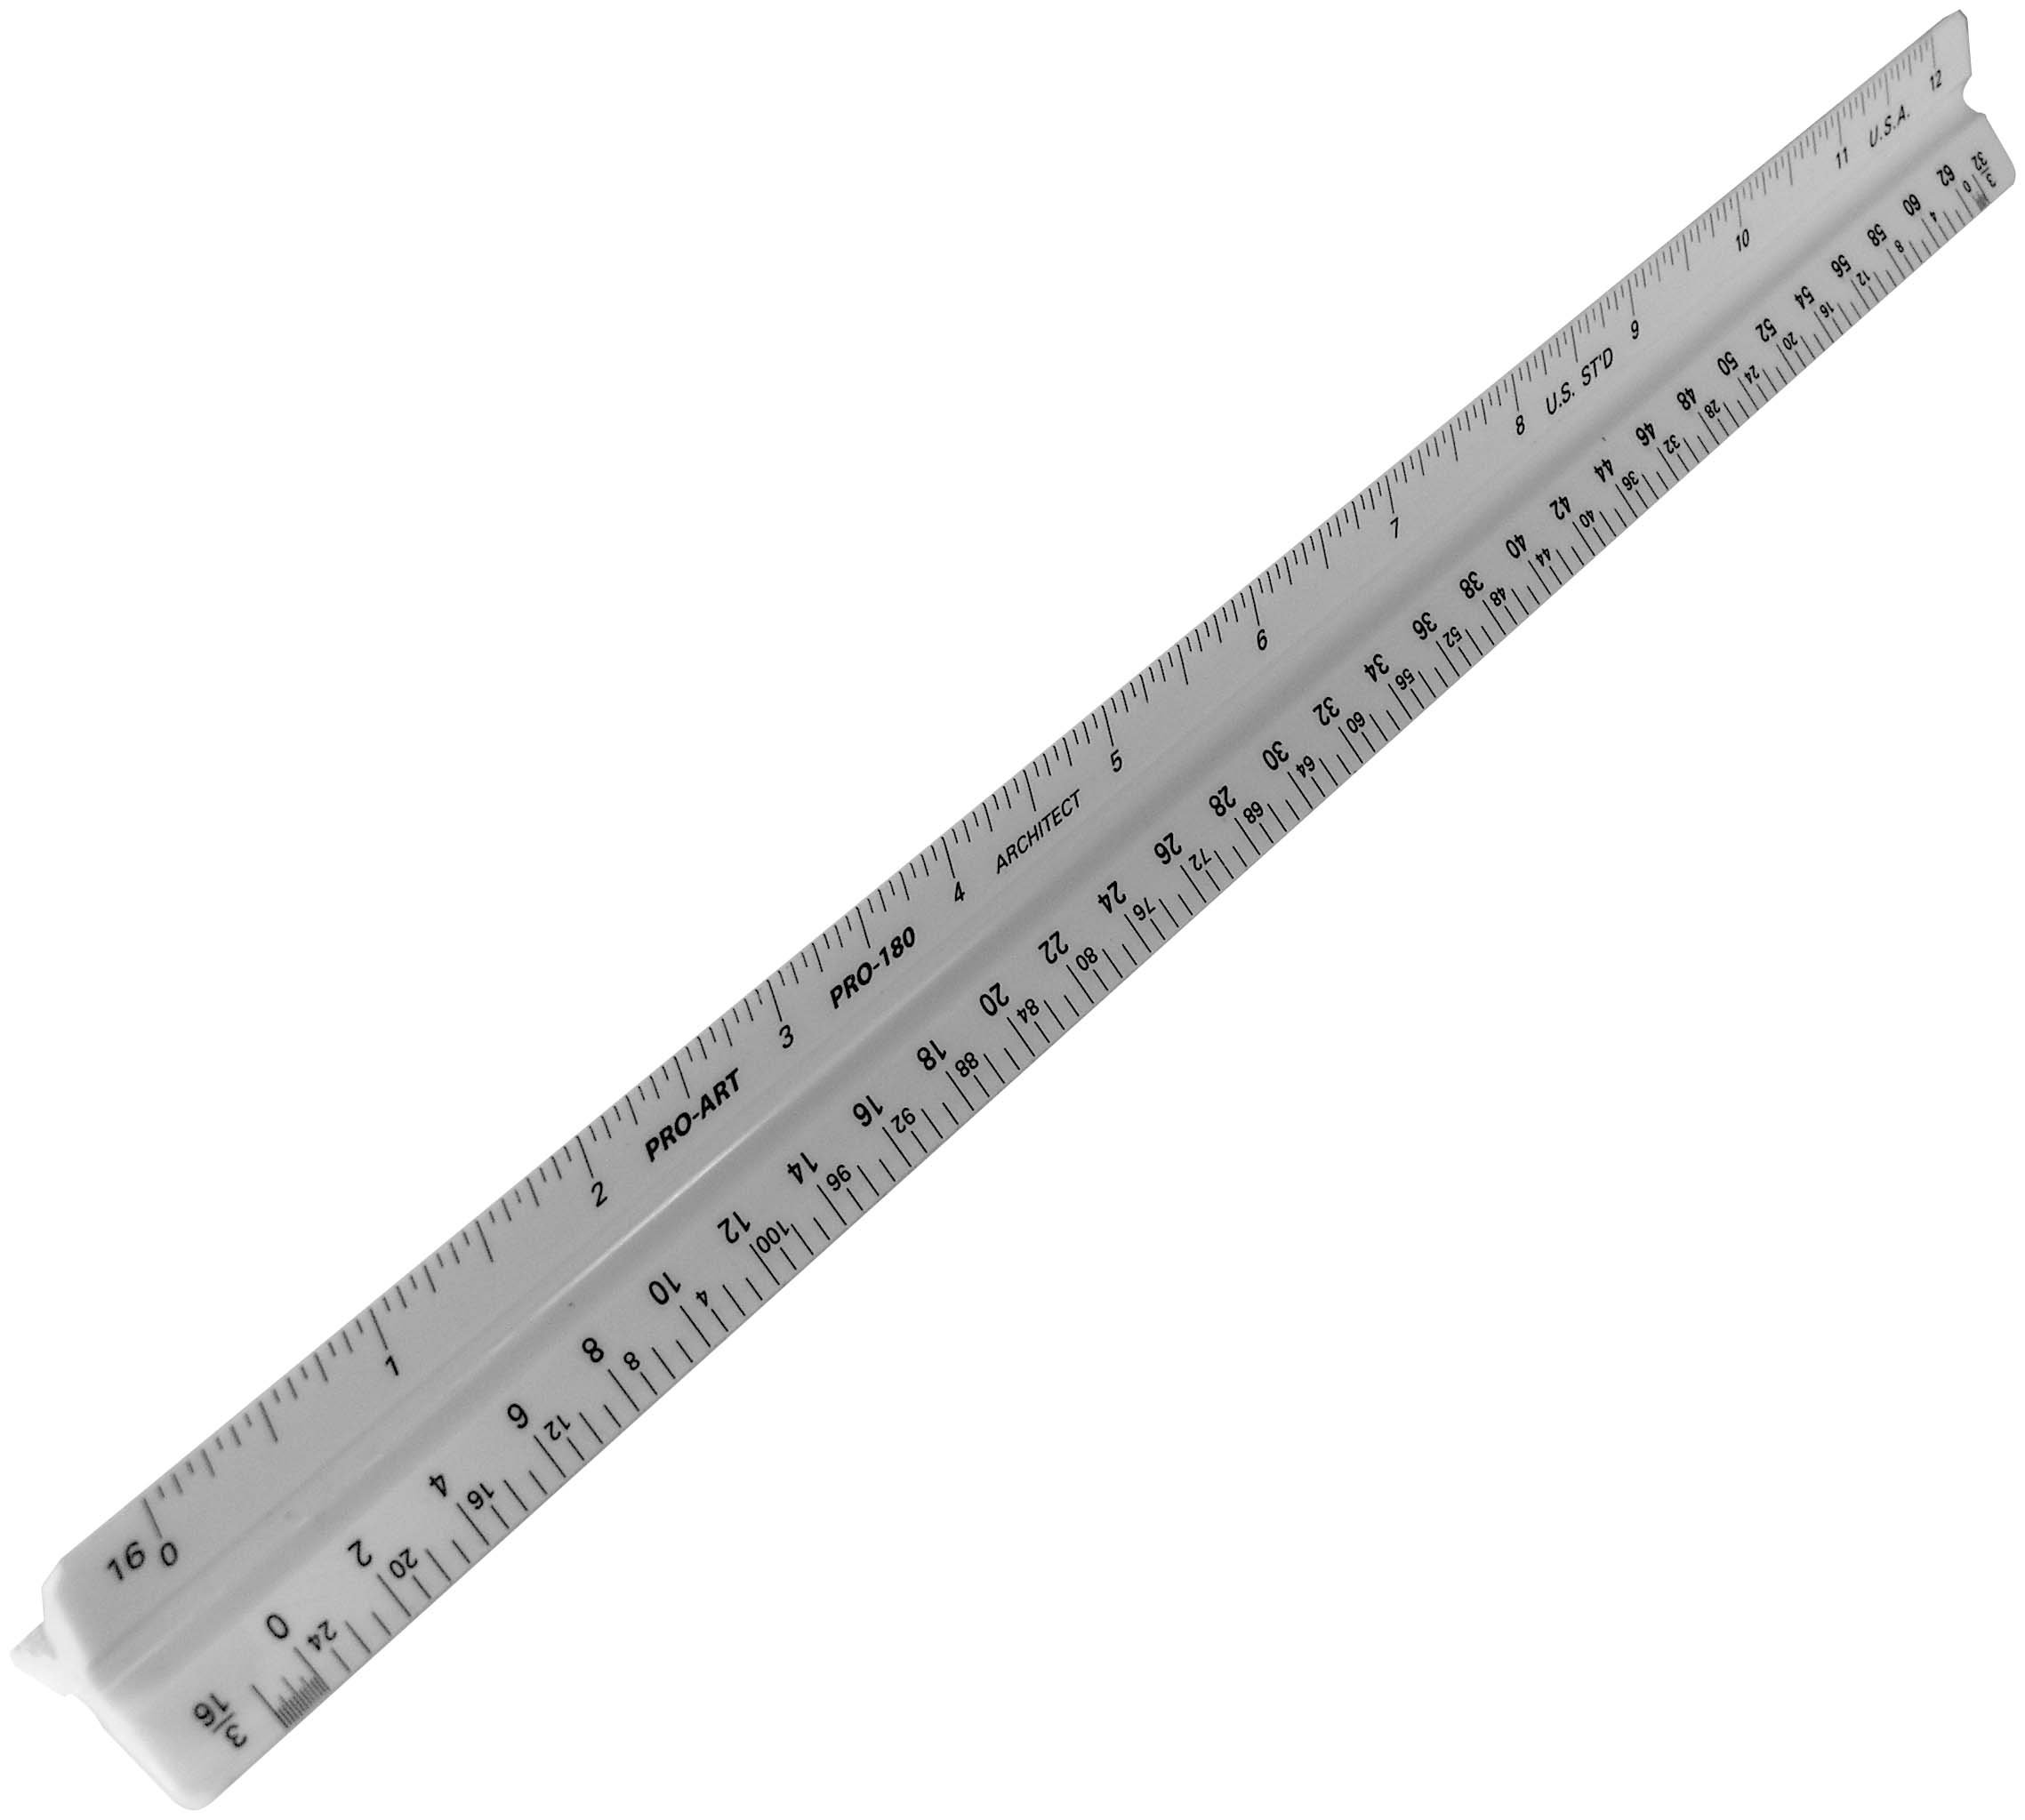 Pro Art 180 12-Inch Architectural Triangular Scale by Pro Art (Image #1)